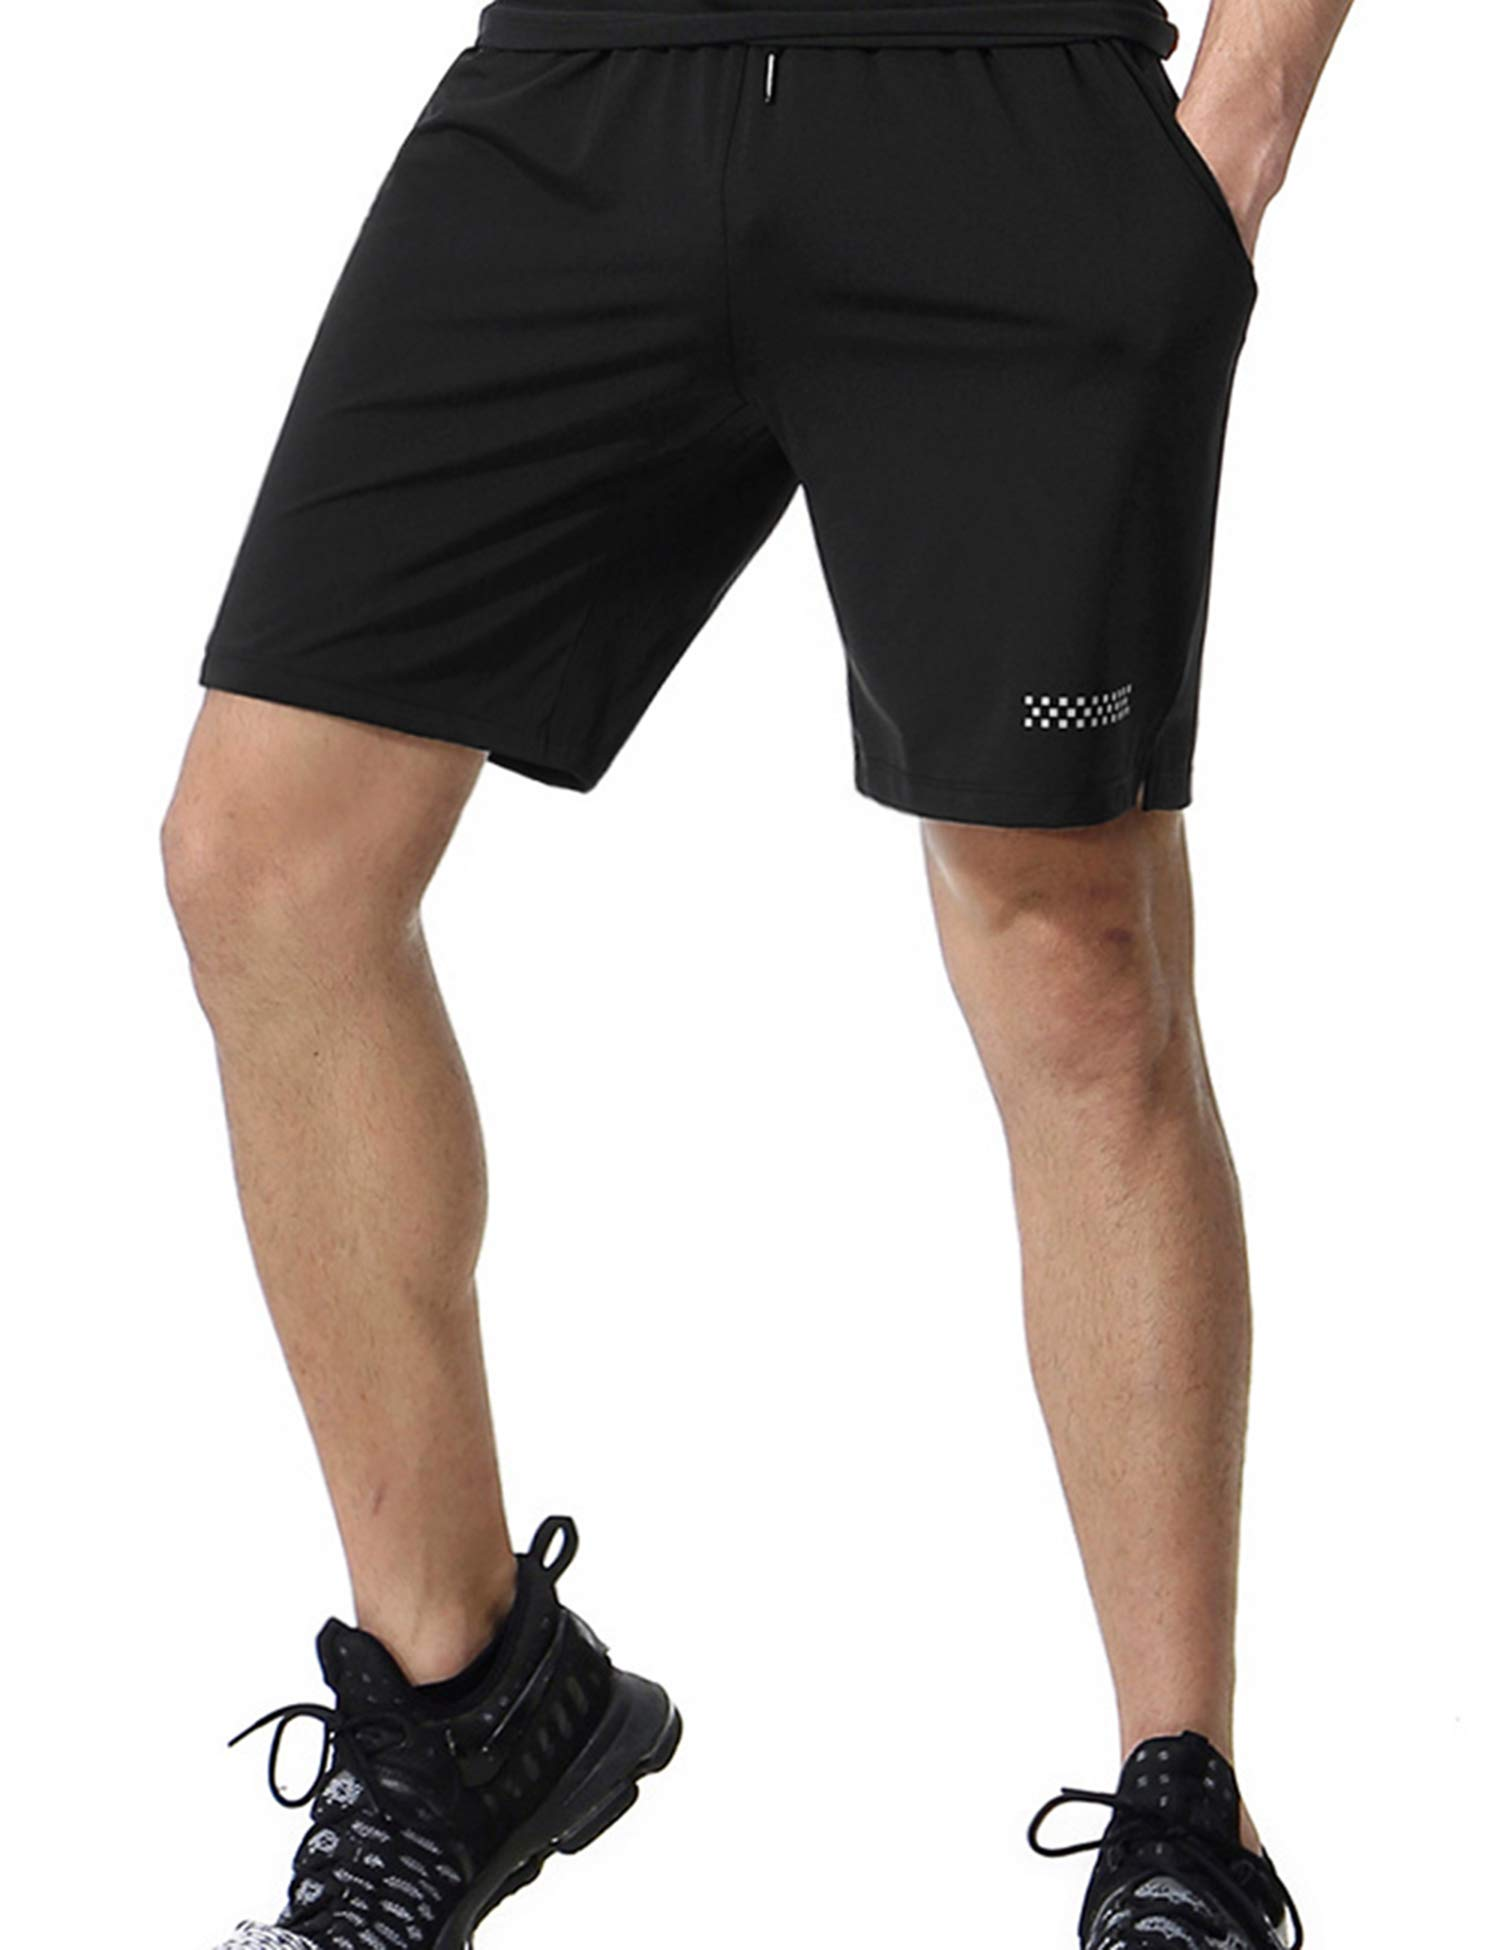 poriff Men's Lightweight Workout Running Athletic Shorts with Pockets